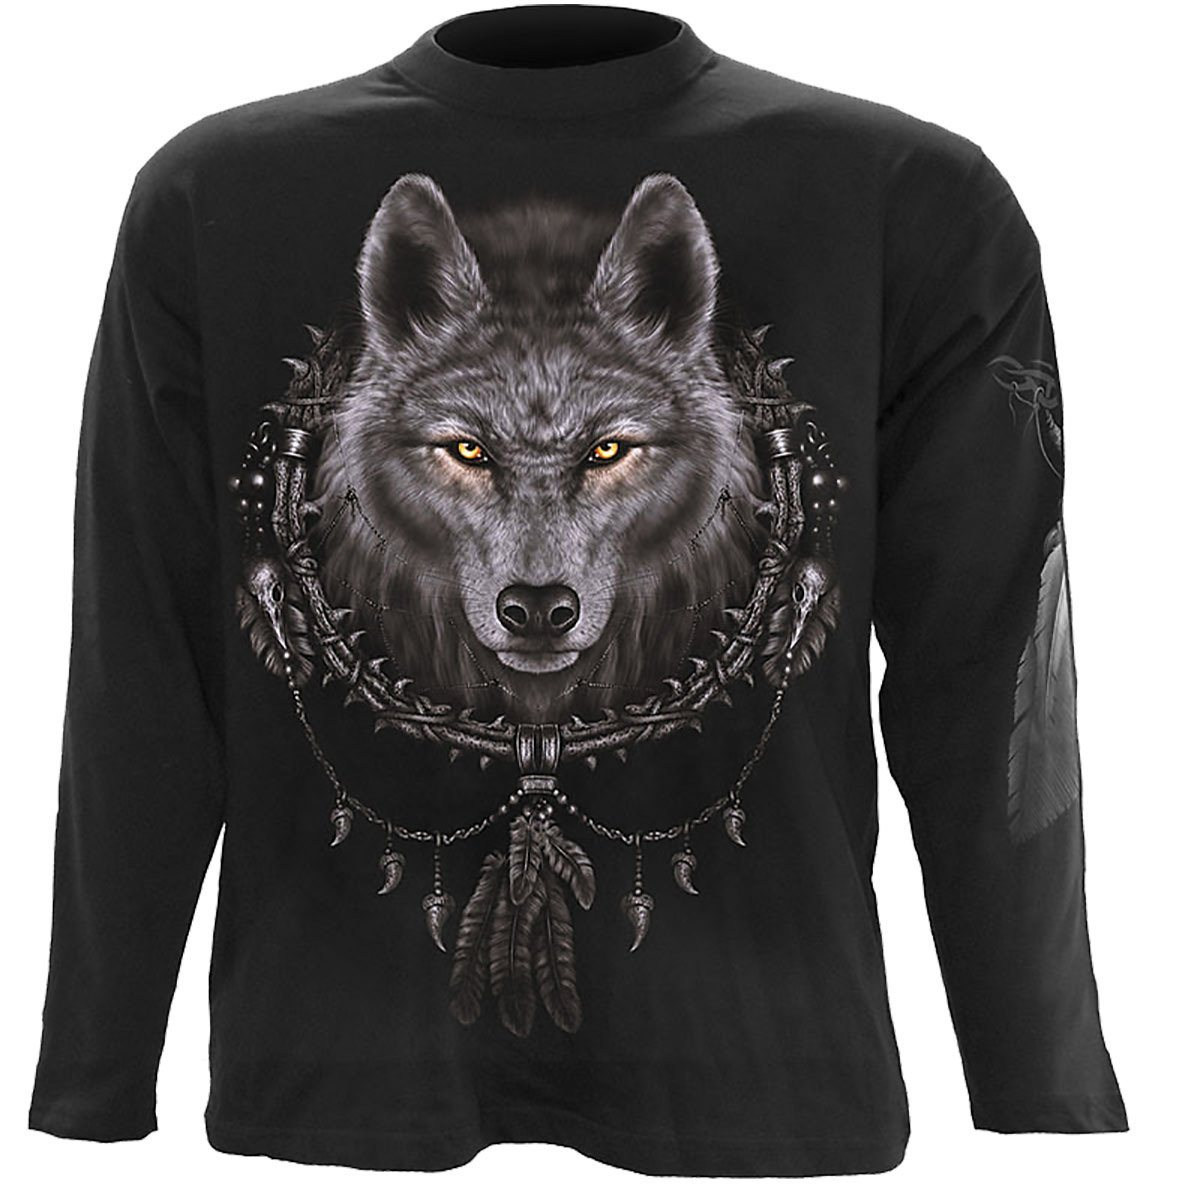 Wolf Dreamcatcher Men's Black Longsleeve Shirt